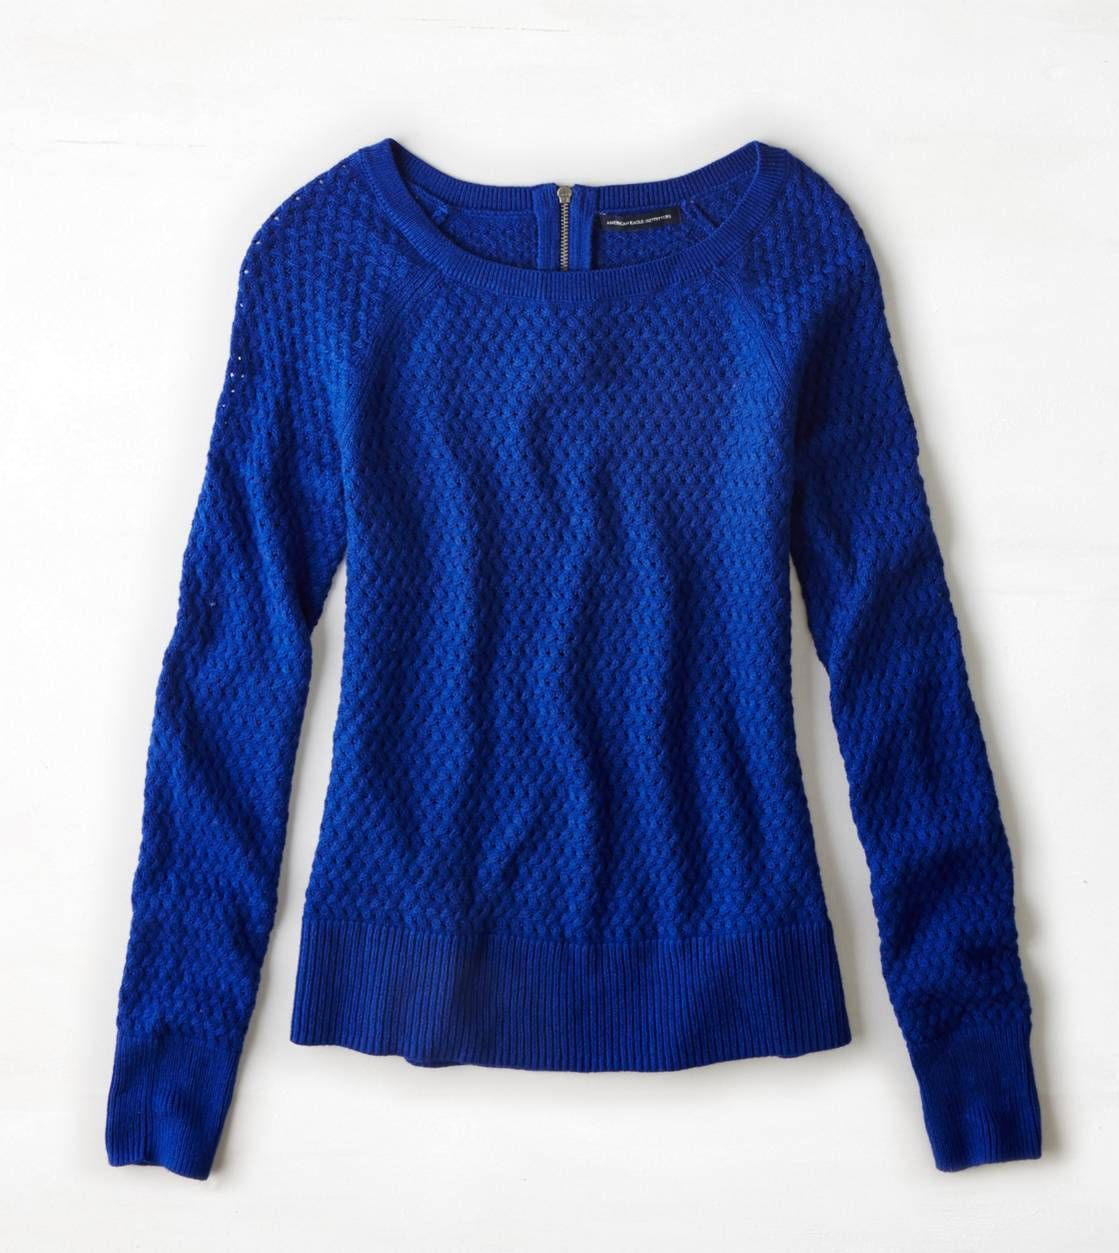 To replace my old bright blue sweater AEO Zip Back Crew Sweater ...